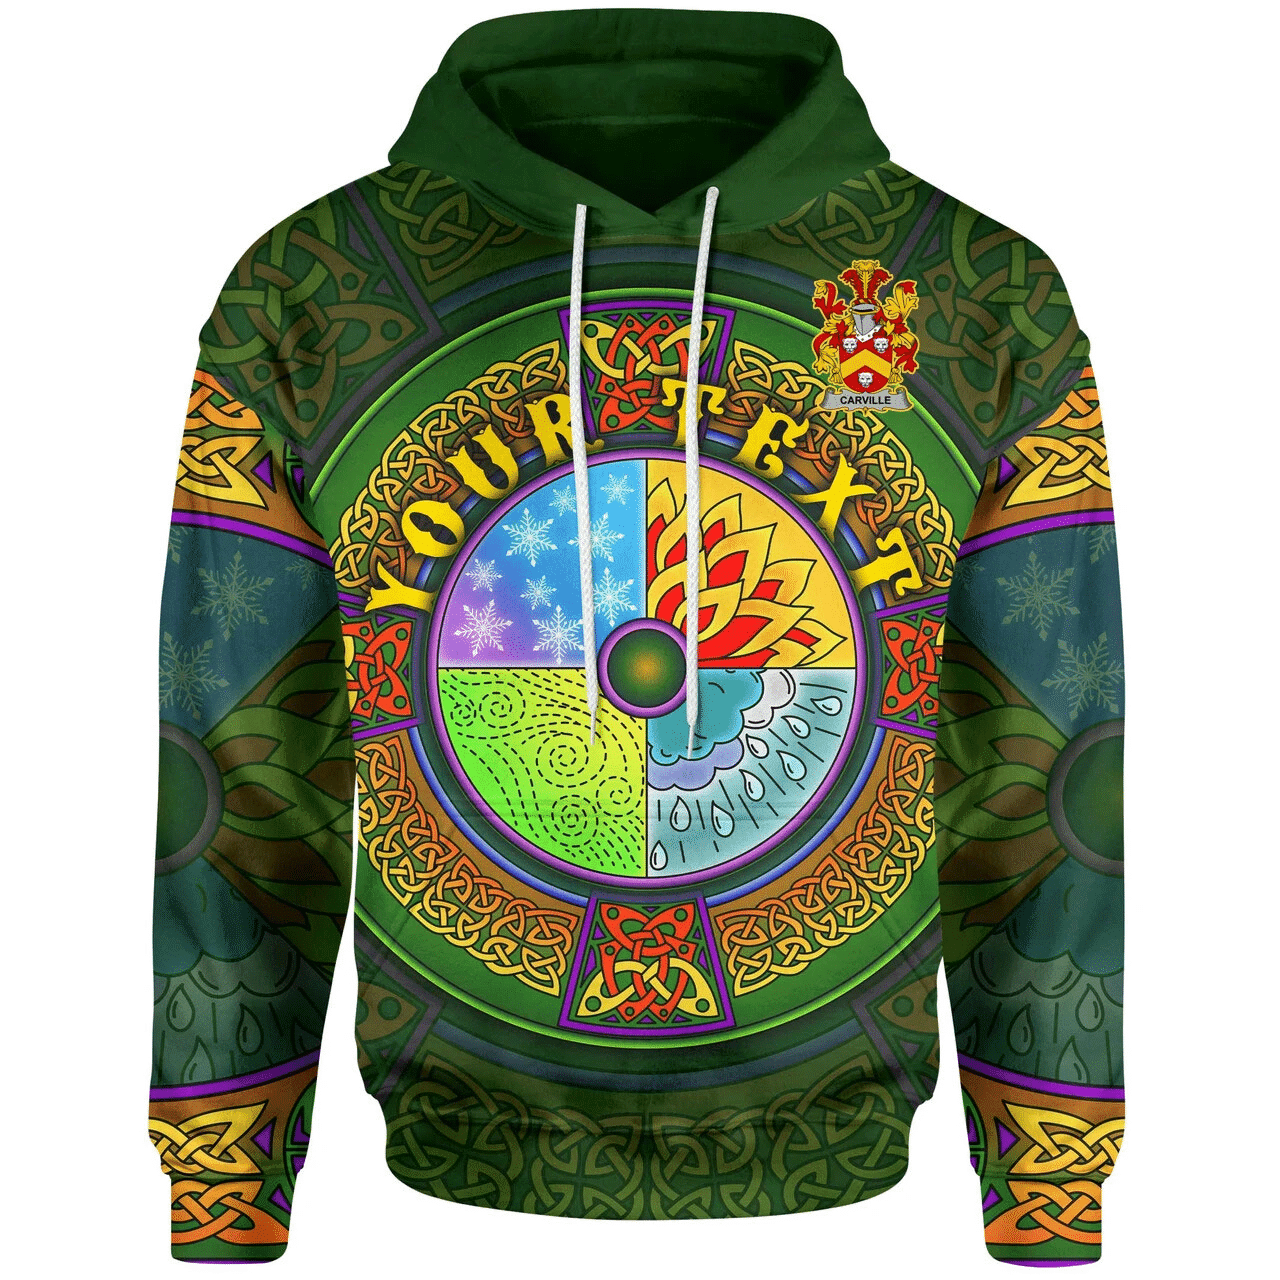 (Custom) 1stIreland Ireland Hoodie - Carville or McCarville Irish Family Crest Hoodie - Celtic Elements A7